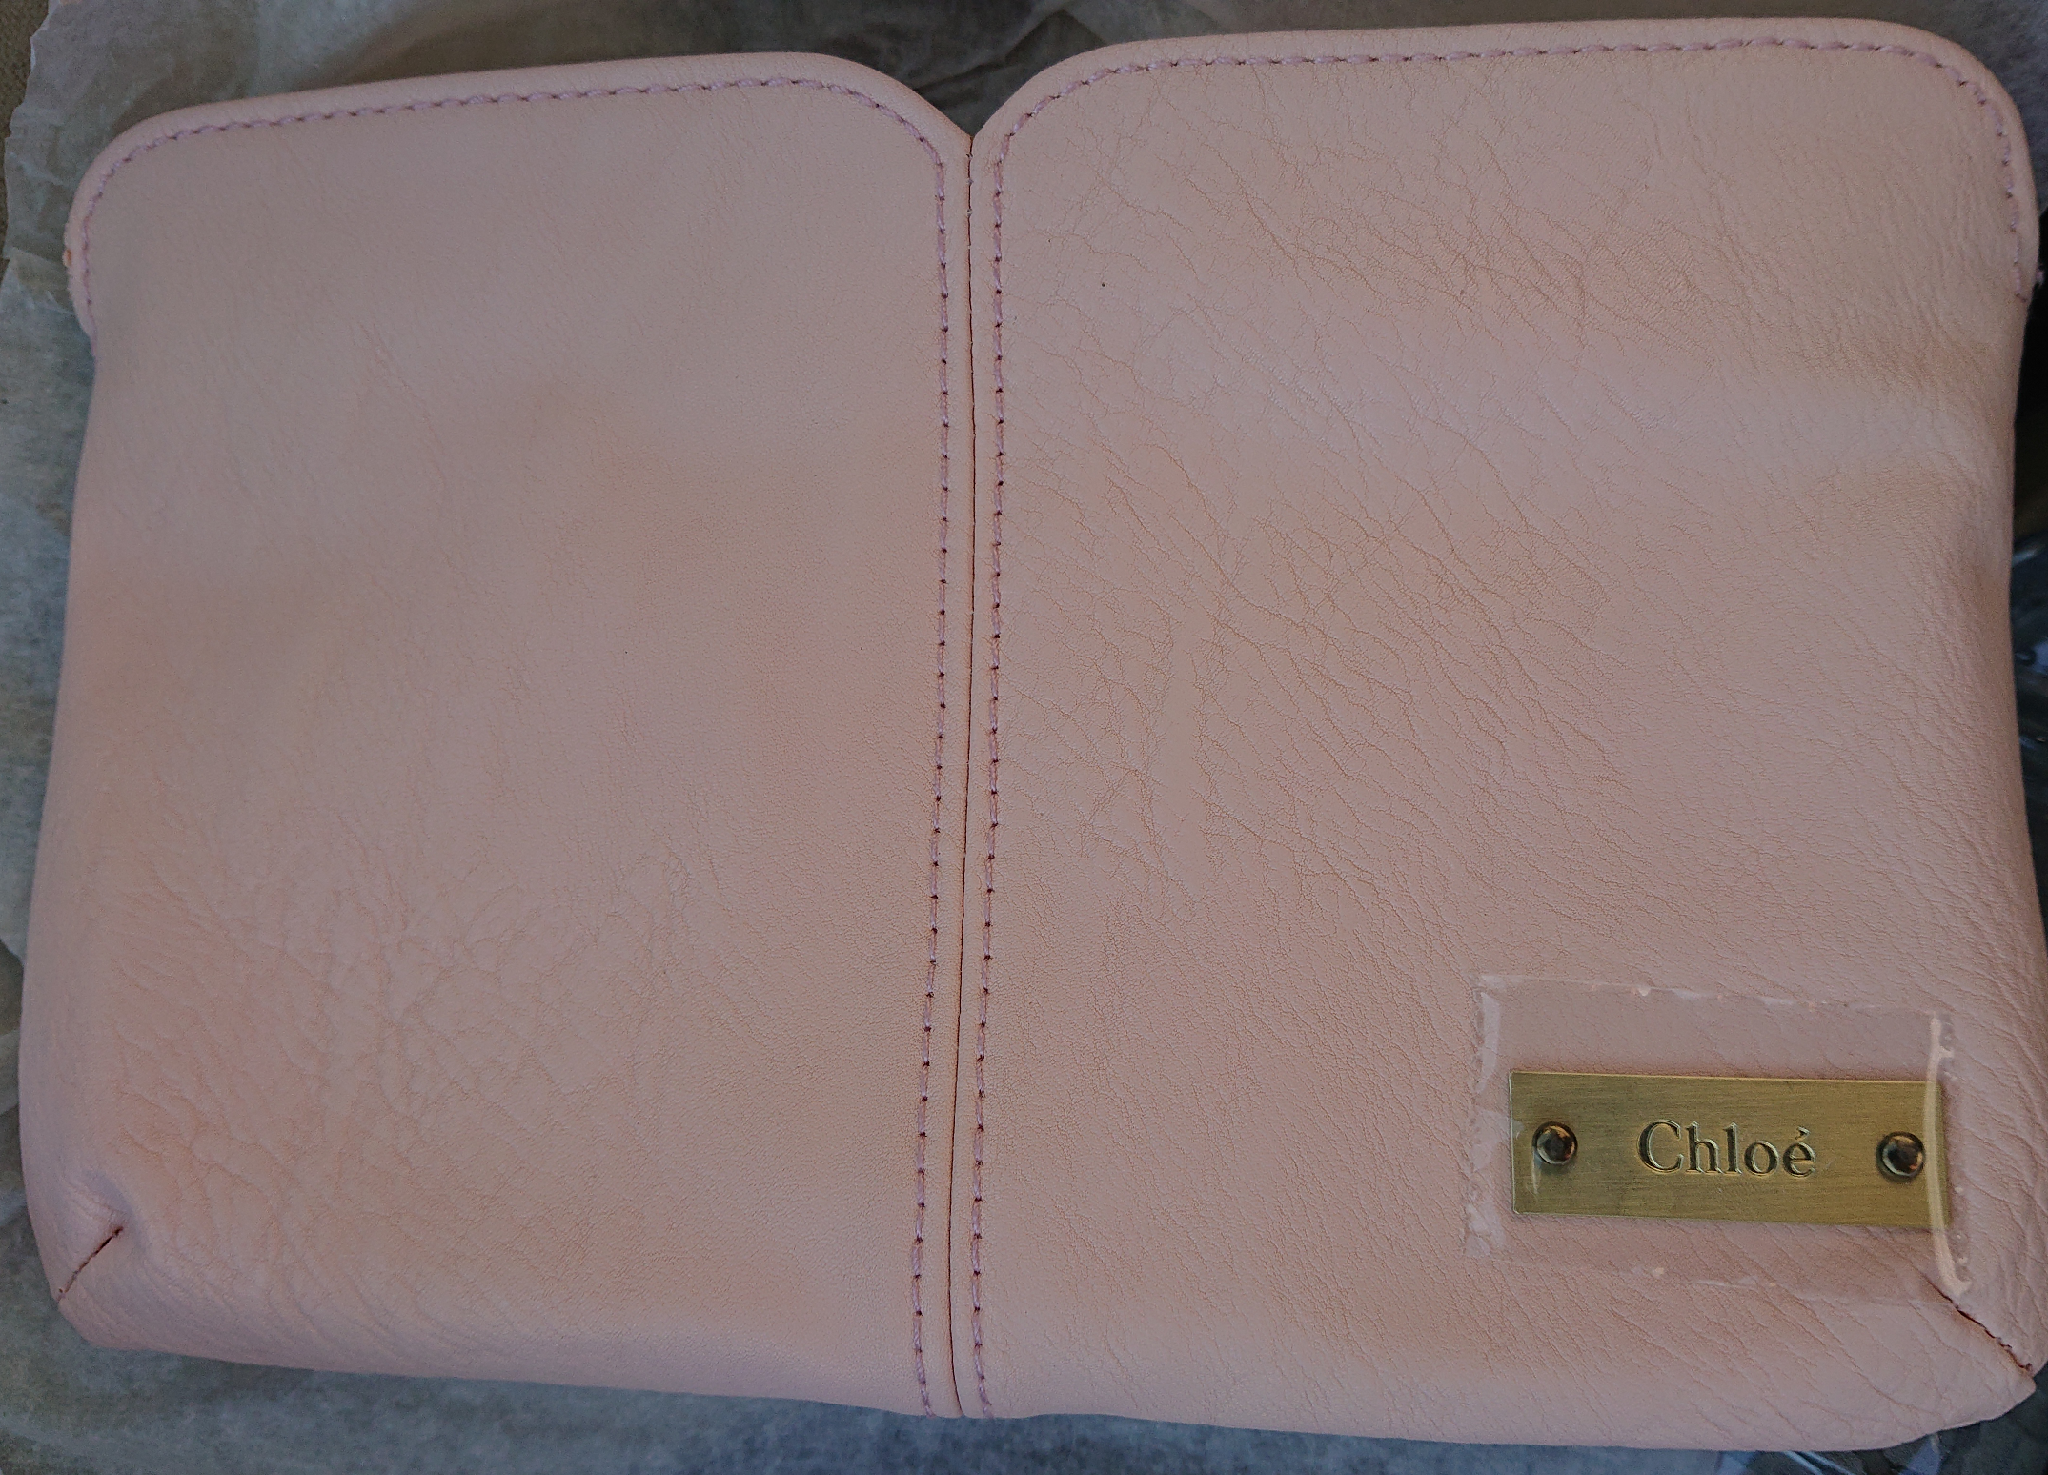 Chloe Bags for sale, 3 bags for 20 only